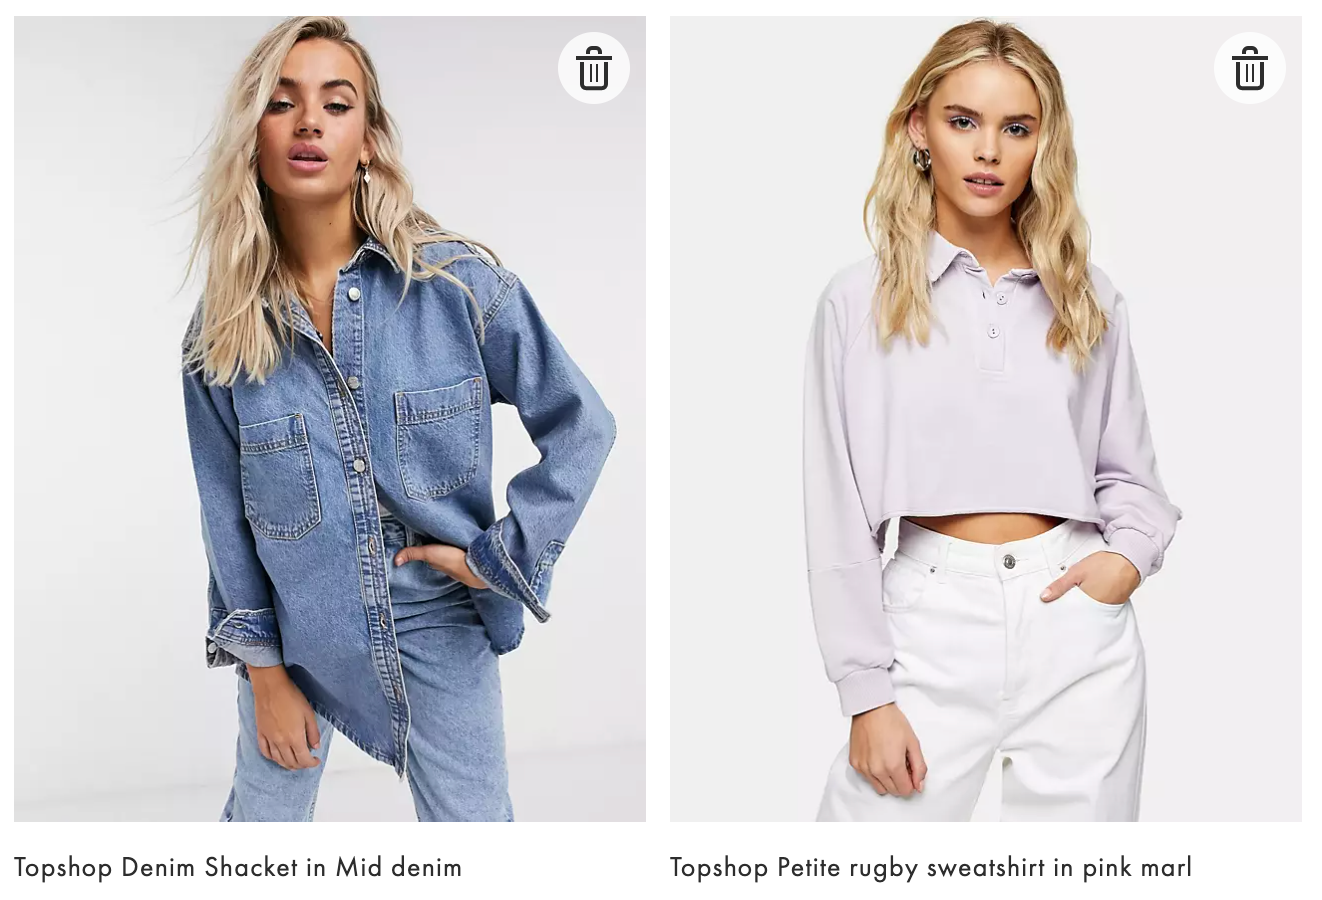 Topshop Denim Shacket in Mid denim https://www.asos.com/topshop-petite/topshop-petite-rugby-sweatshirt-in-pink-marl/prd/23993028?CTARef=Saved+Items+Image